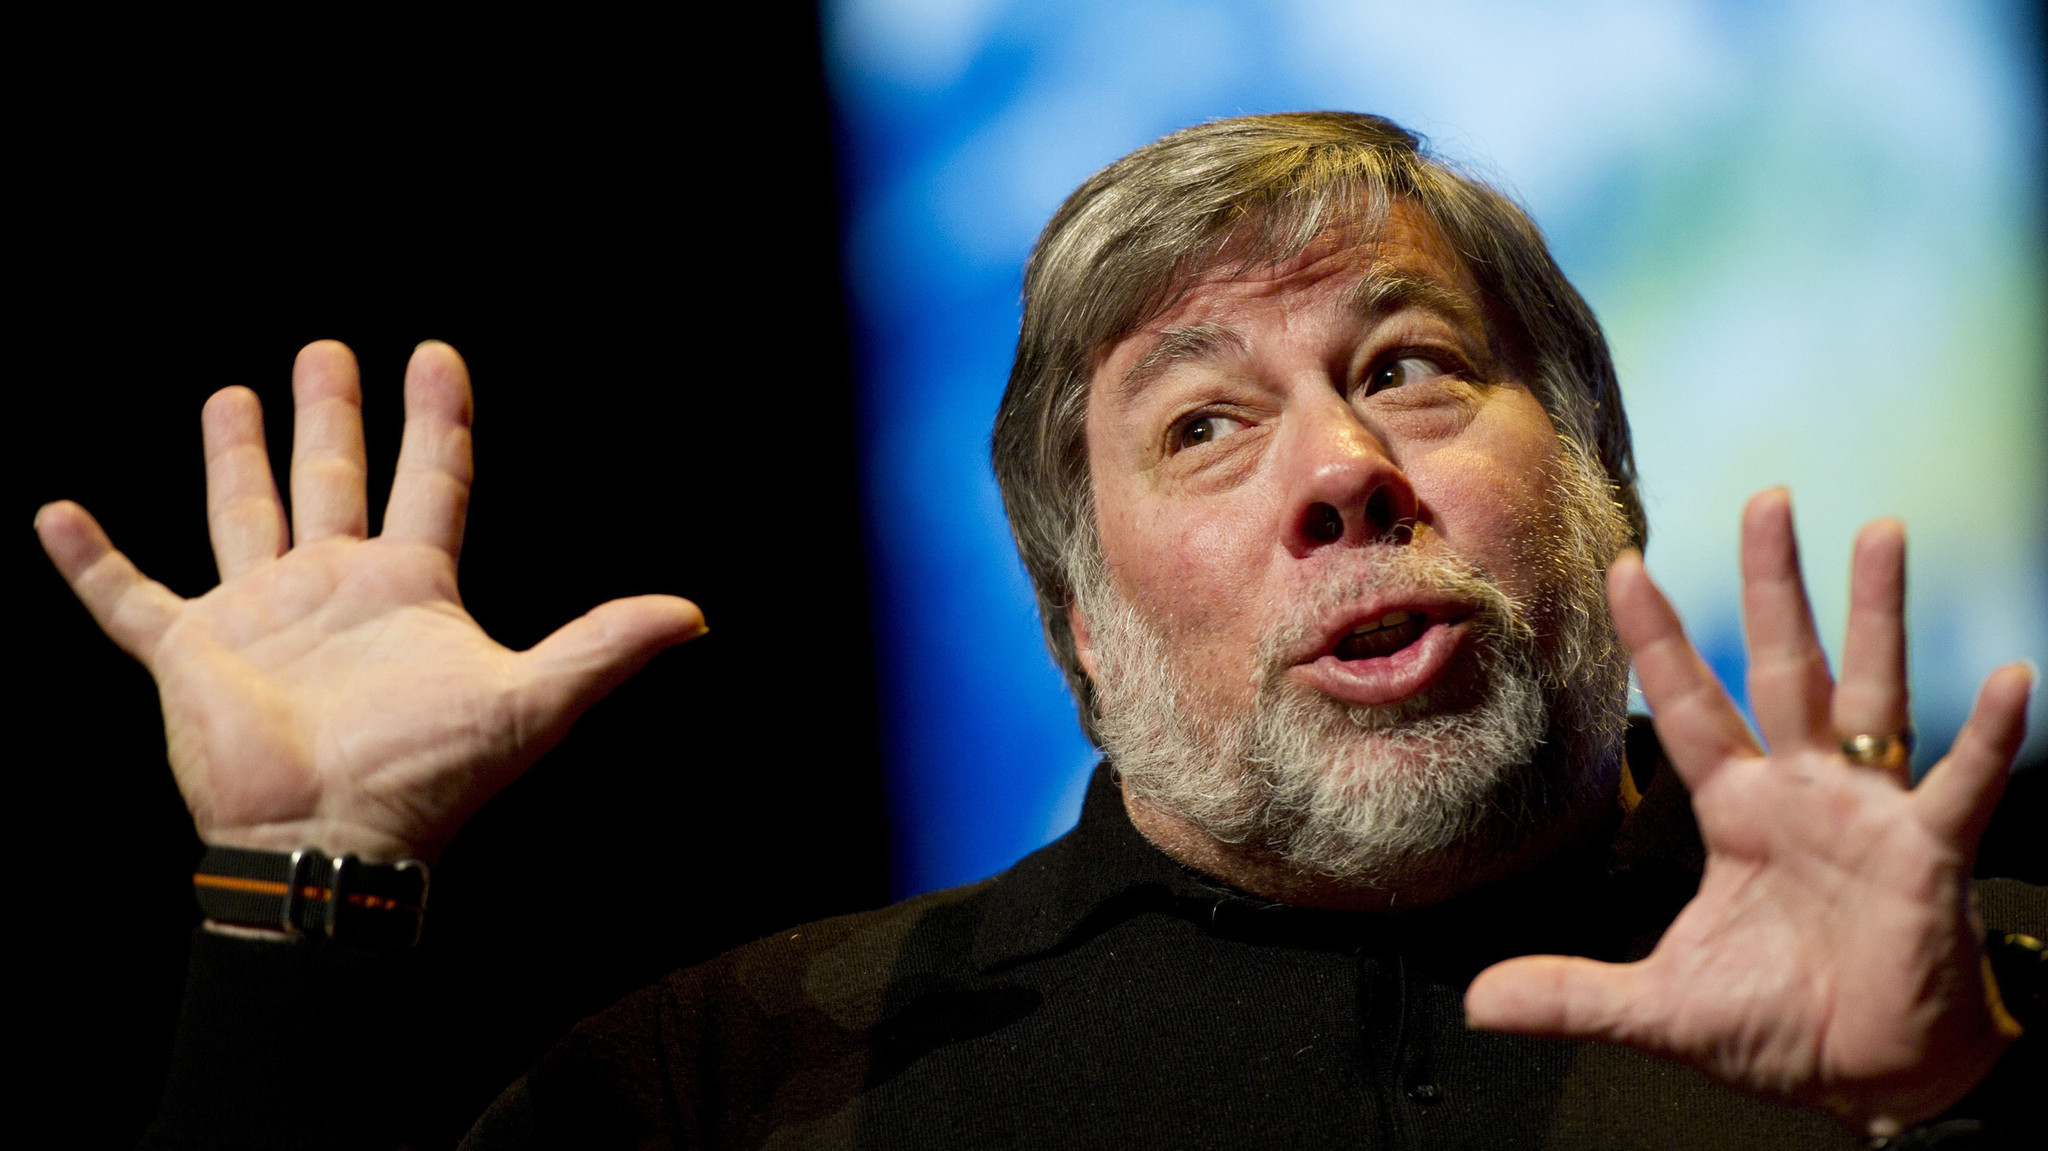 chi-steve-wozniak-apple-automate-promat-bsi